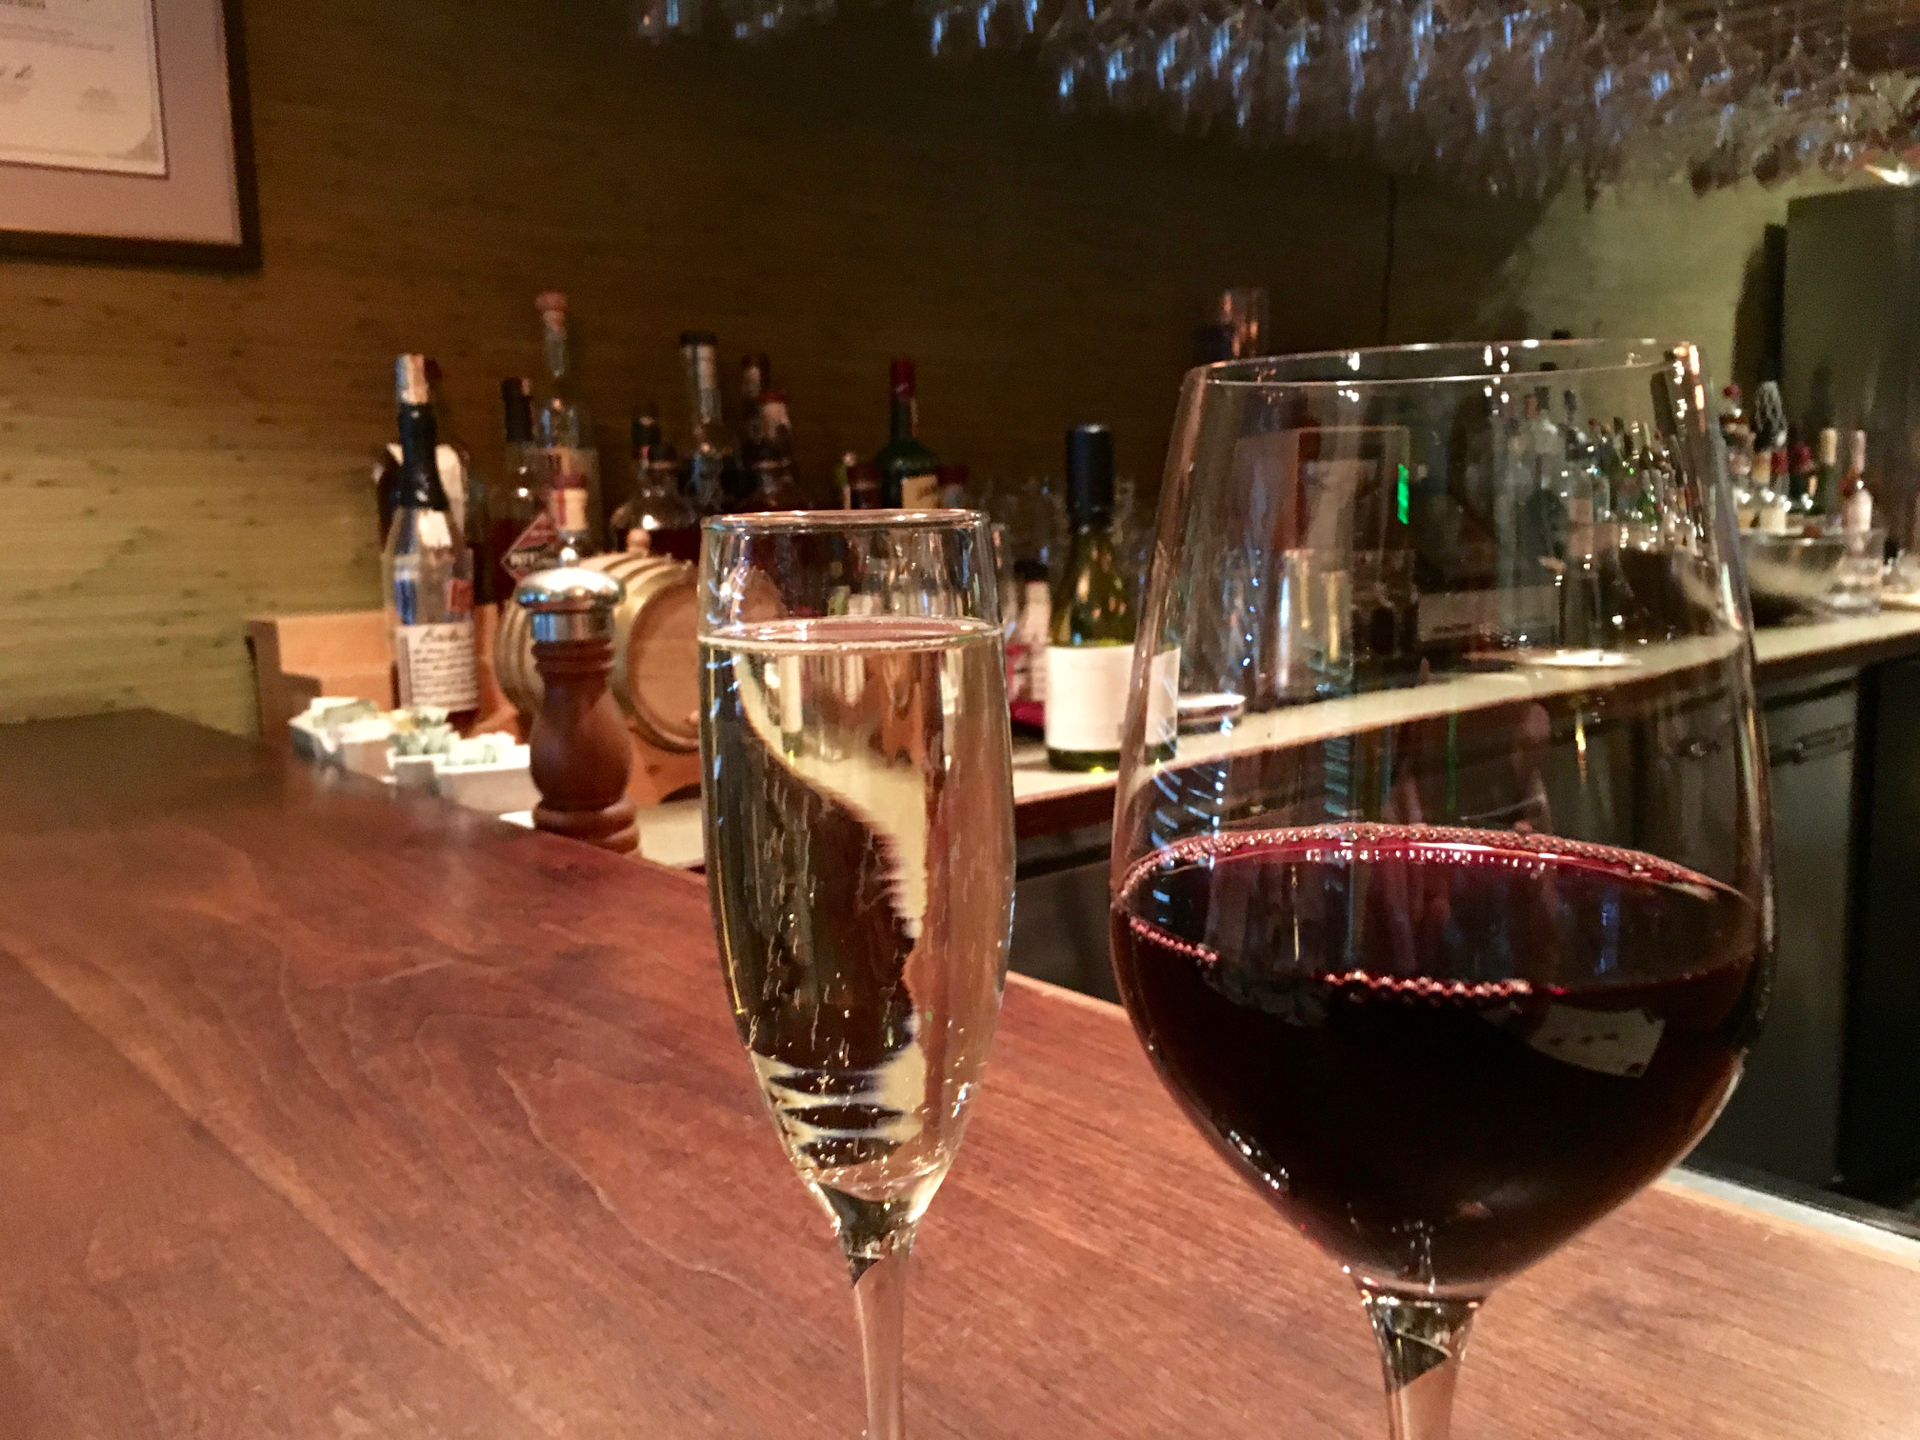 A glass of prosecco and cabernet sauvignon at Cin-Cin Wine Bar & Restaurant.